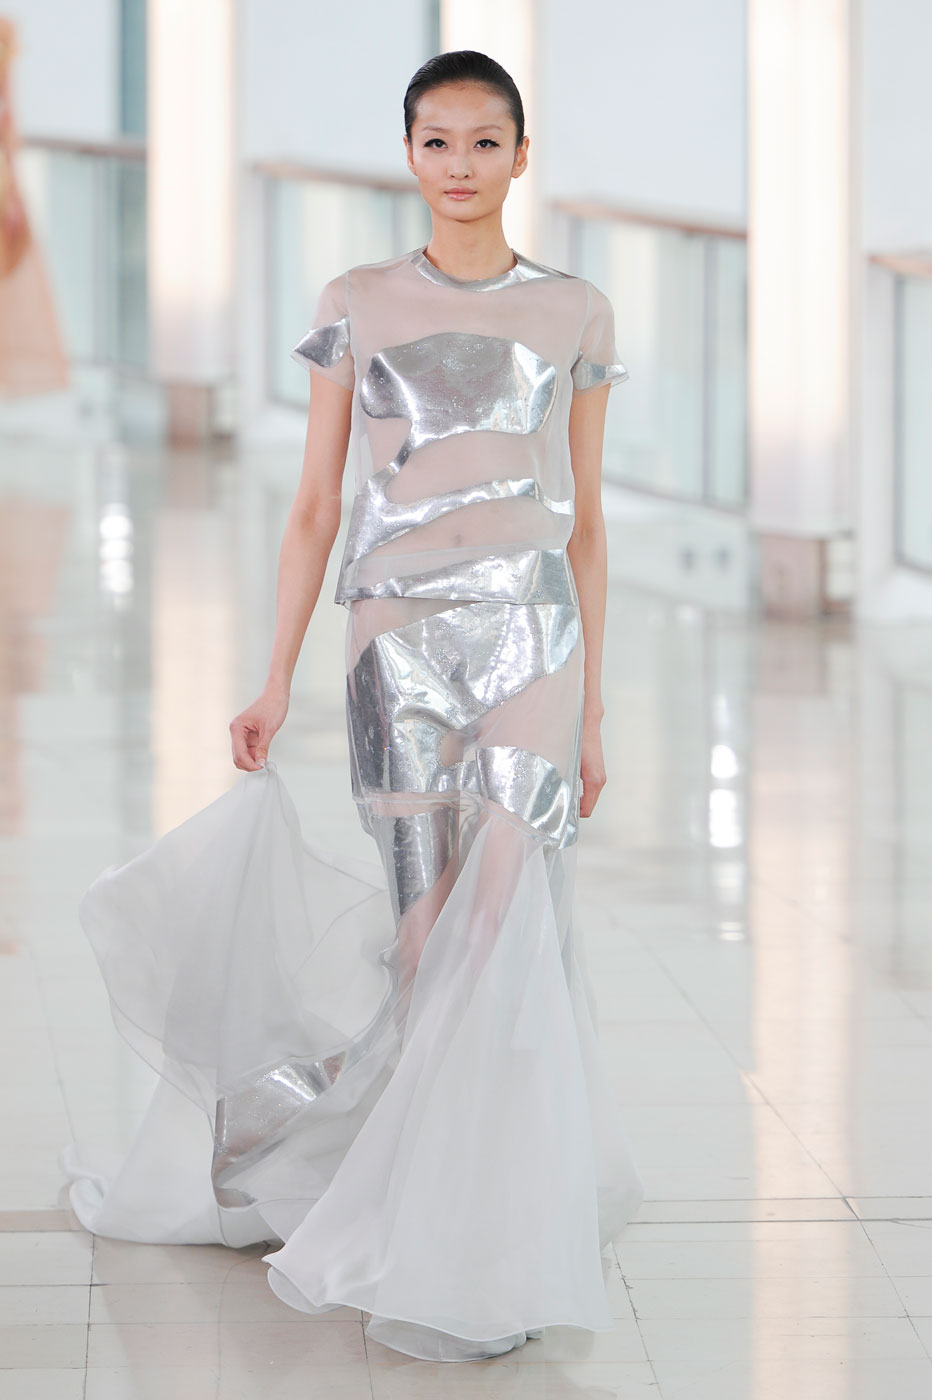 stephane-rolland-fashion-runway-show-haute-couture-paris-spring-2015-the-impression-51